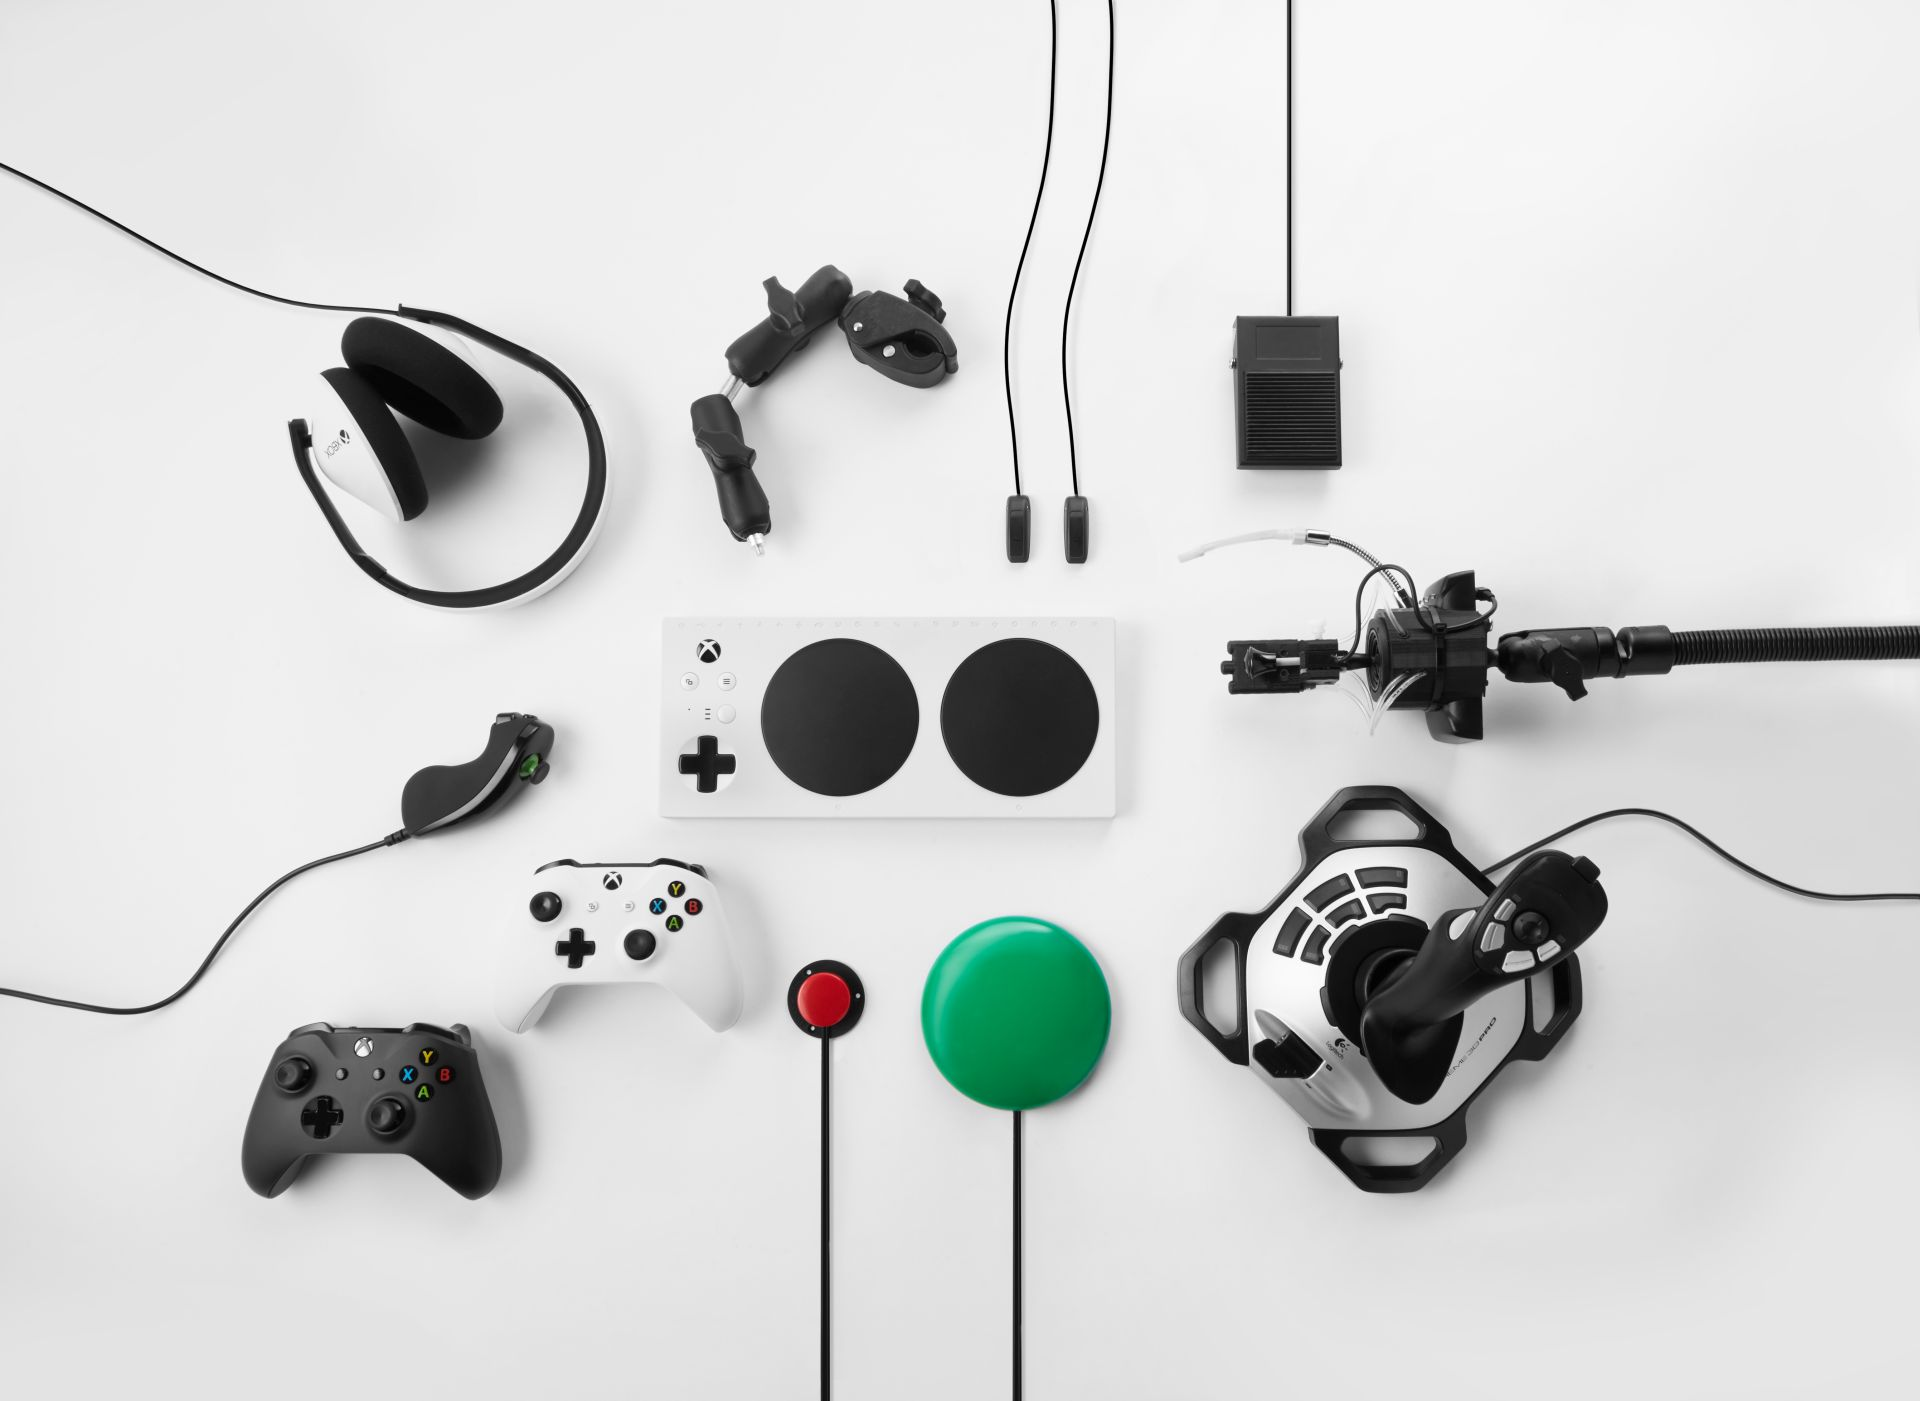 Xbox Adaptive Controller Has Been Announced By Microsoft